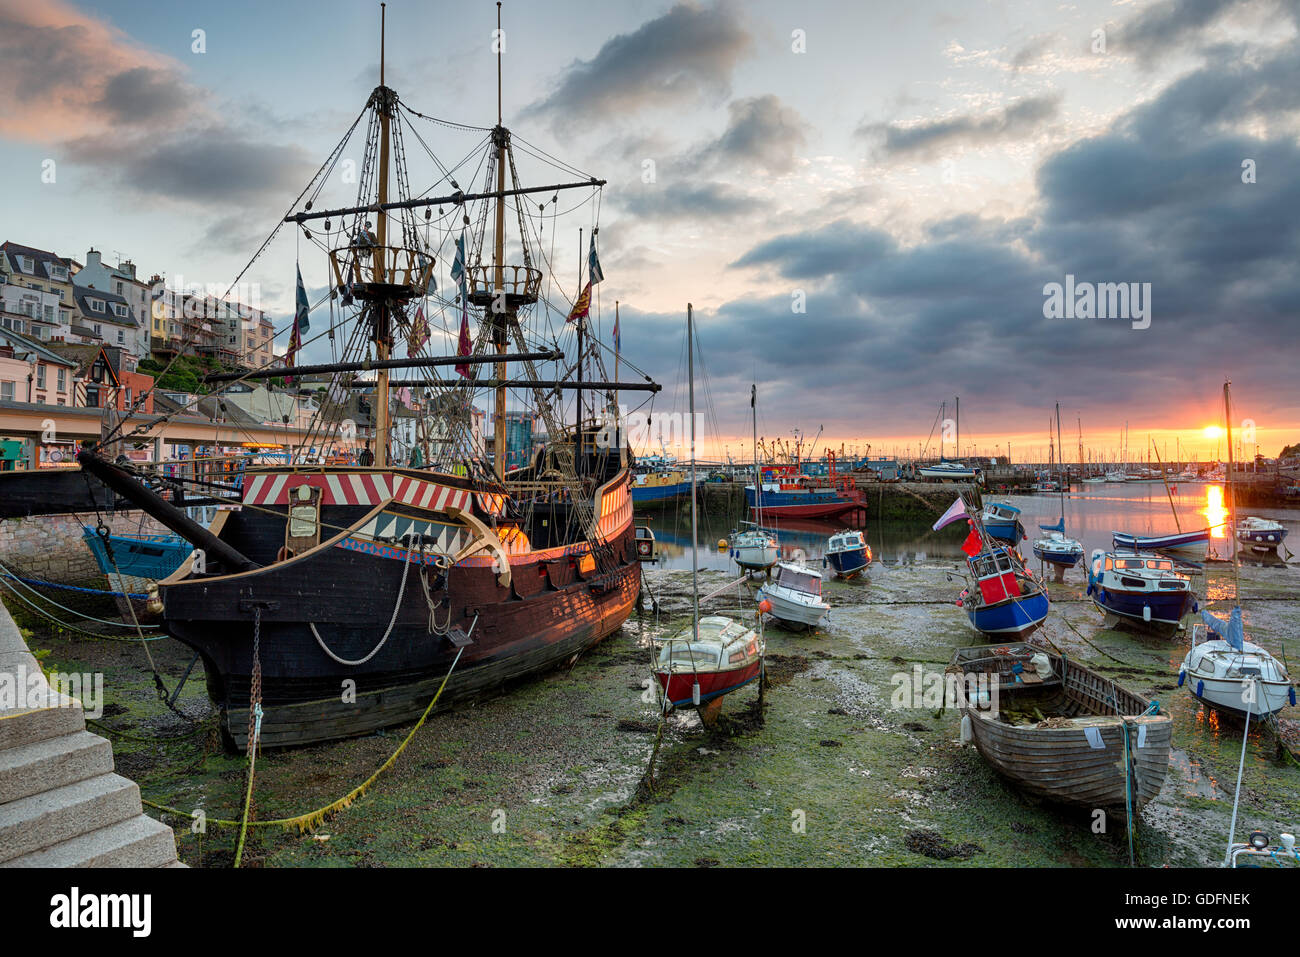 Stunning sunrise over a galleon in Brixham harbour on the south coast of Devon - Stock Image